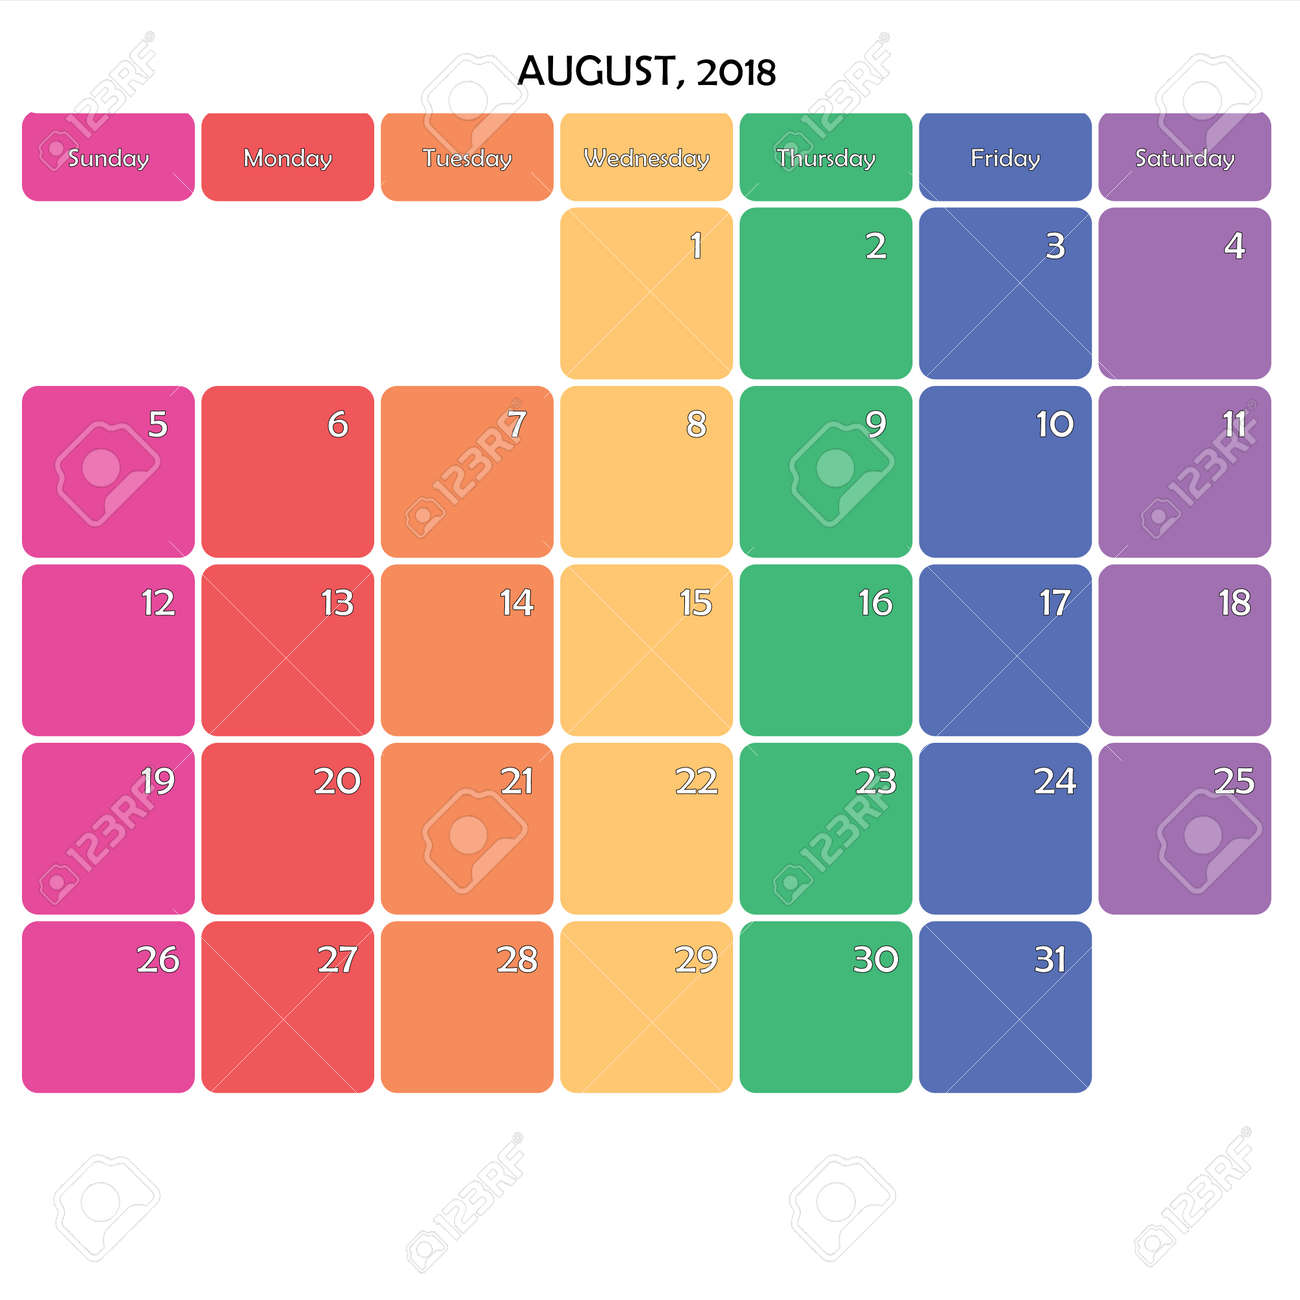 august 2018 planner calendar big editable note space specific color day on white background stock vector